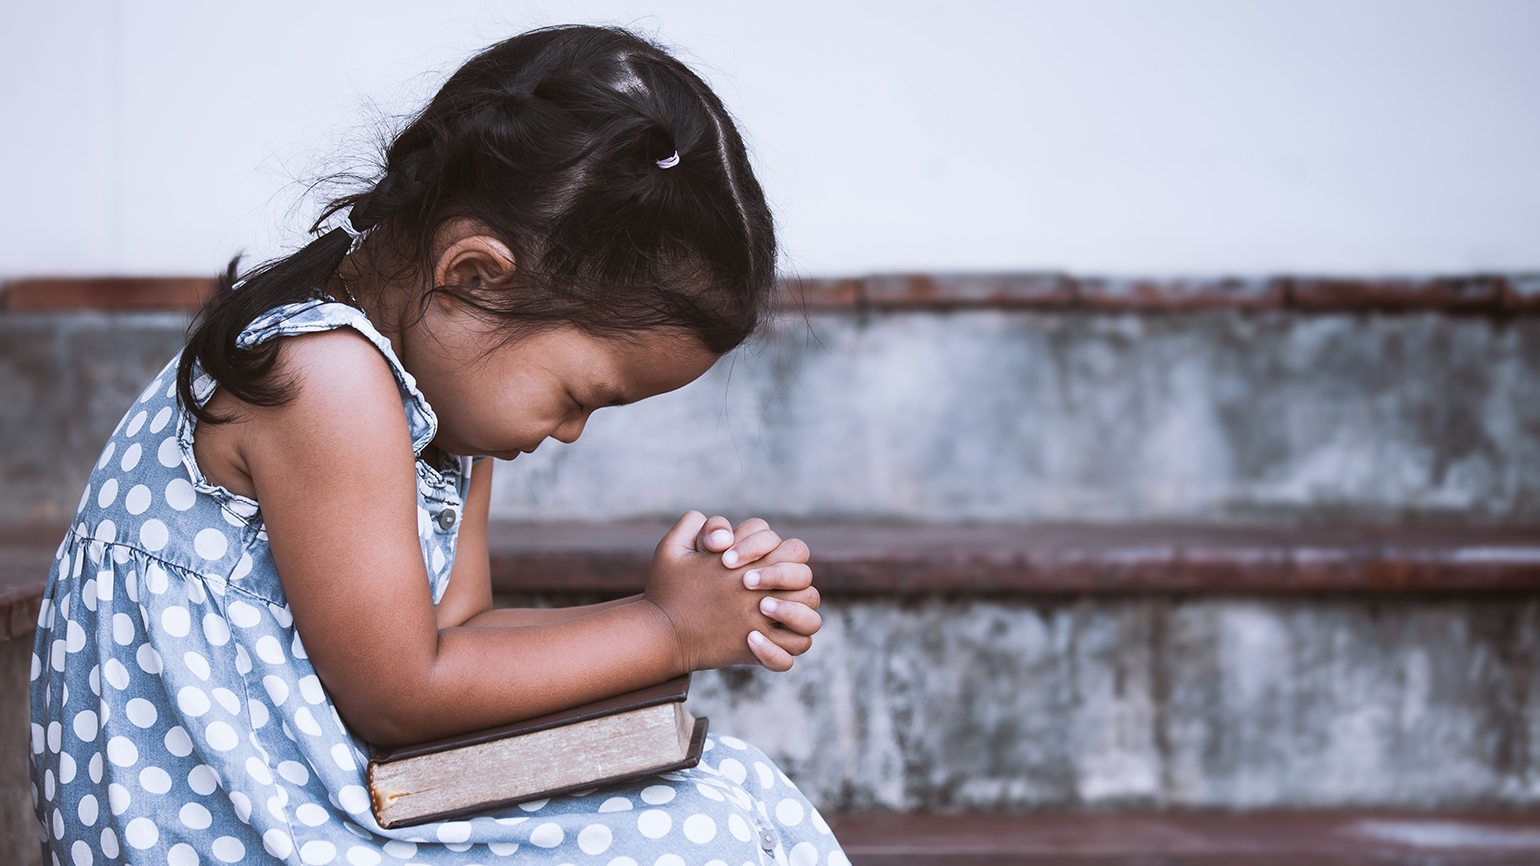 A little girl clasps her hands in prayer